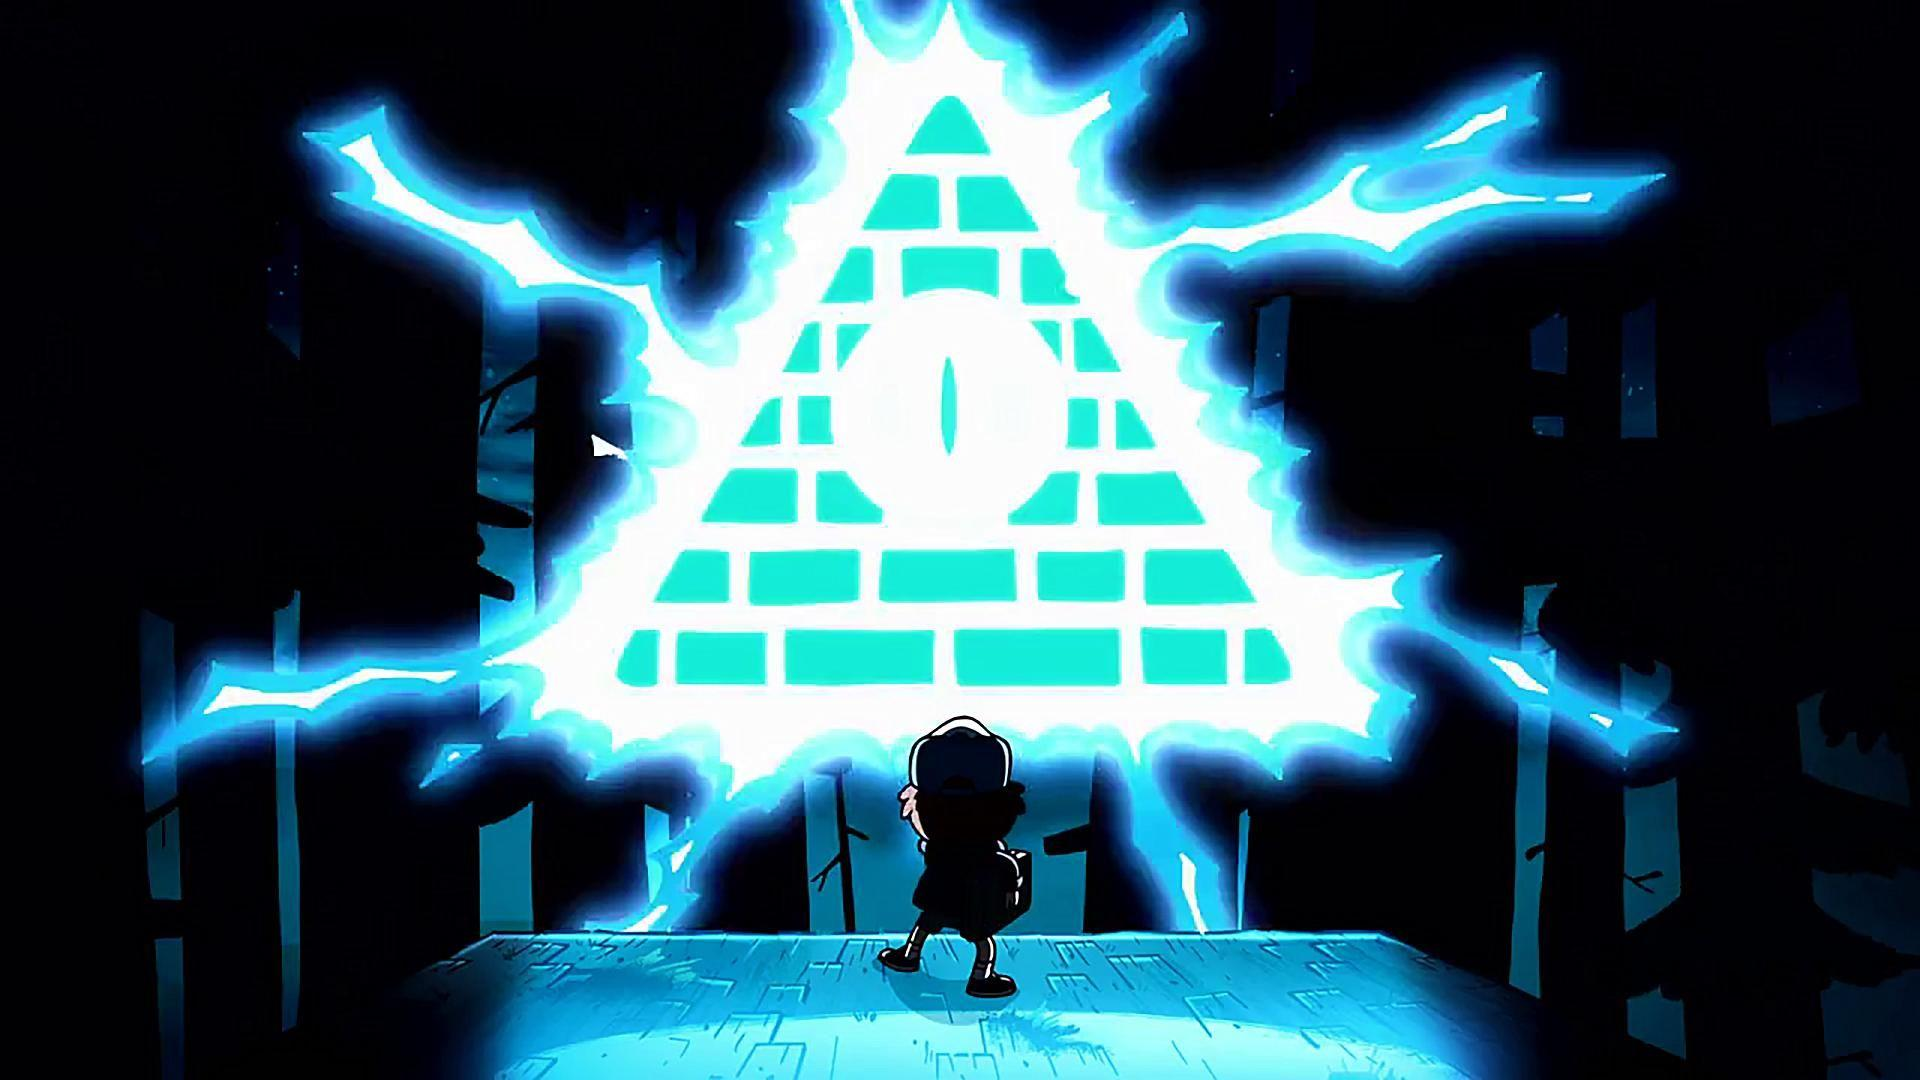 Gravity Falls Wallpaper Desktop Gravity Falls Hd Wallpapers Wallpaper Cave